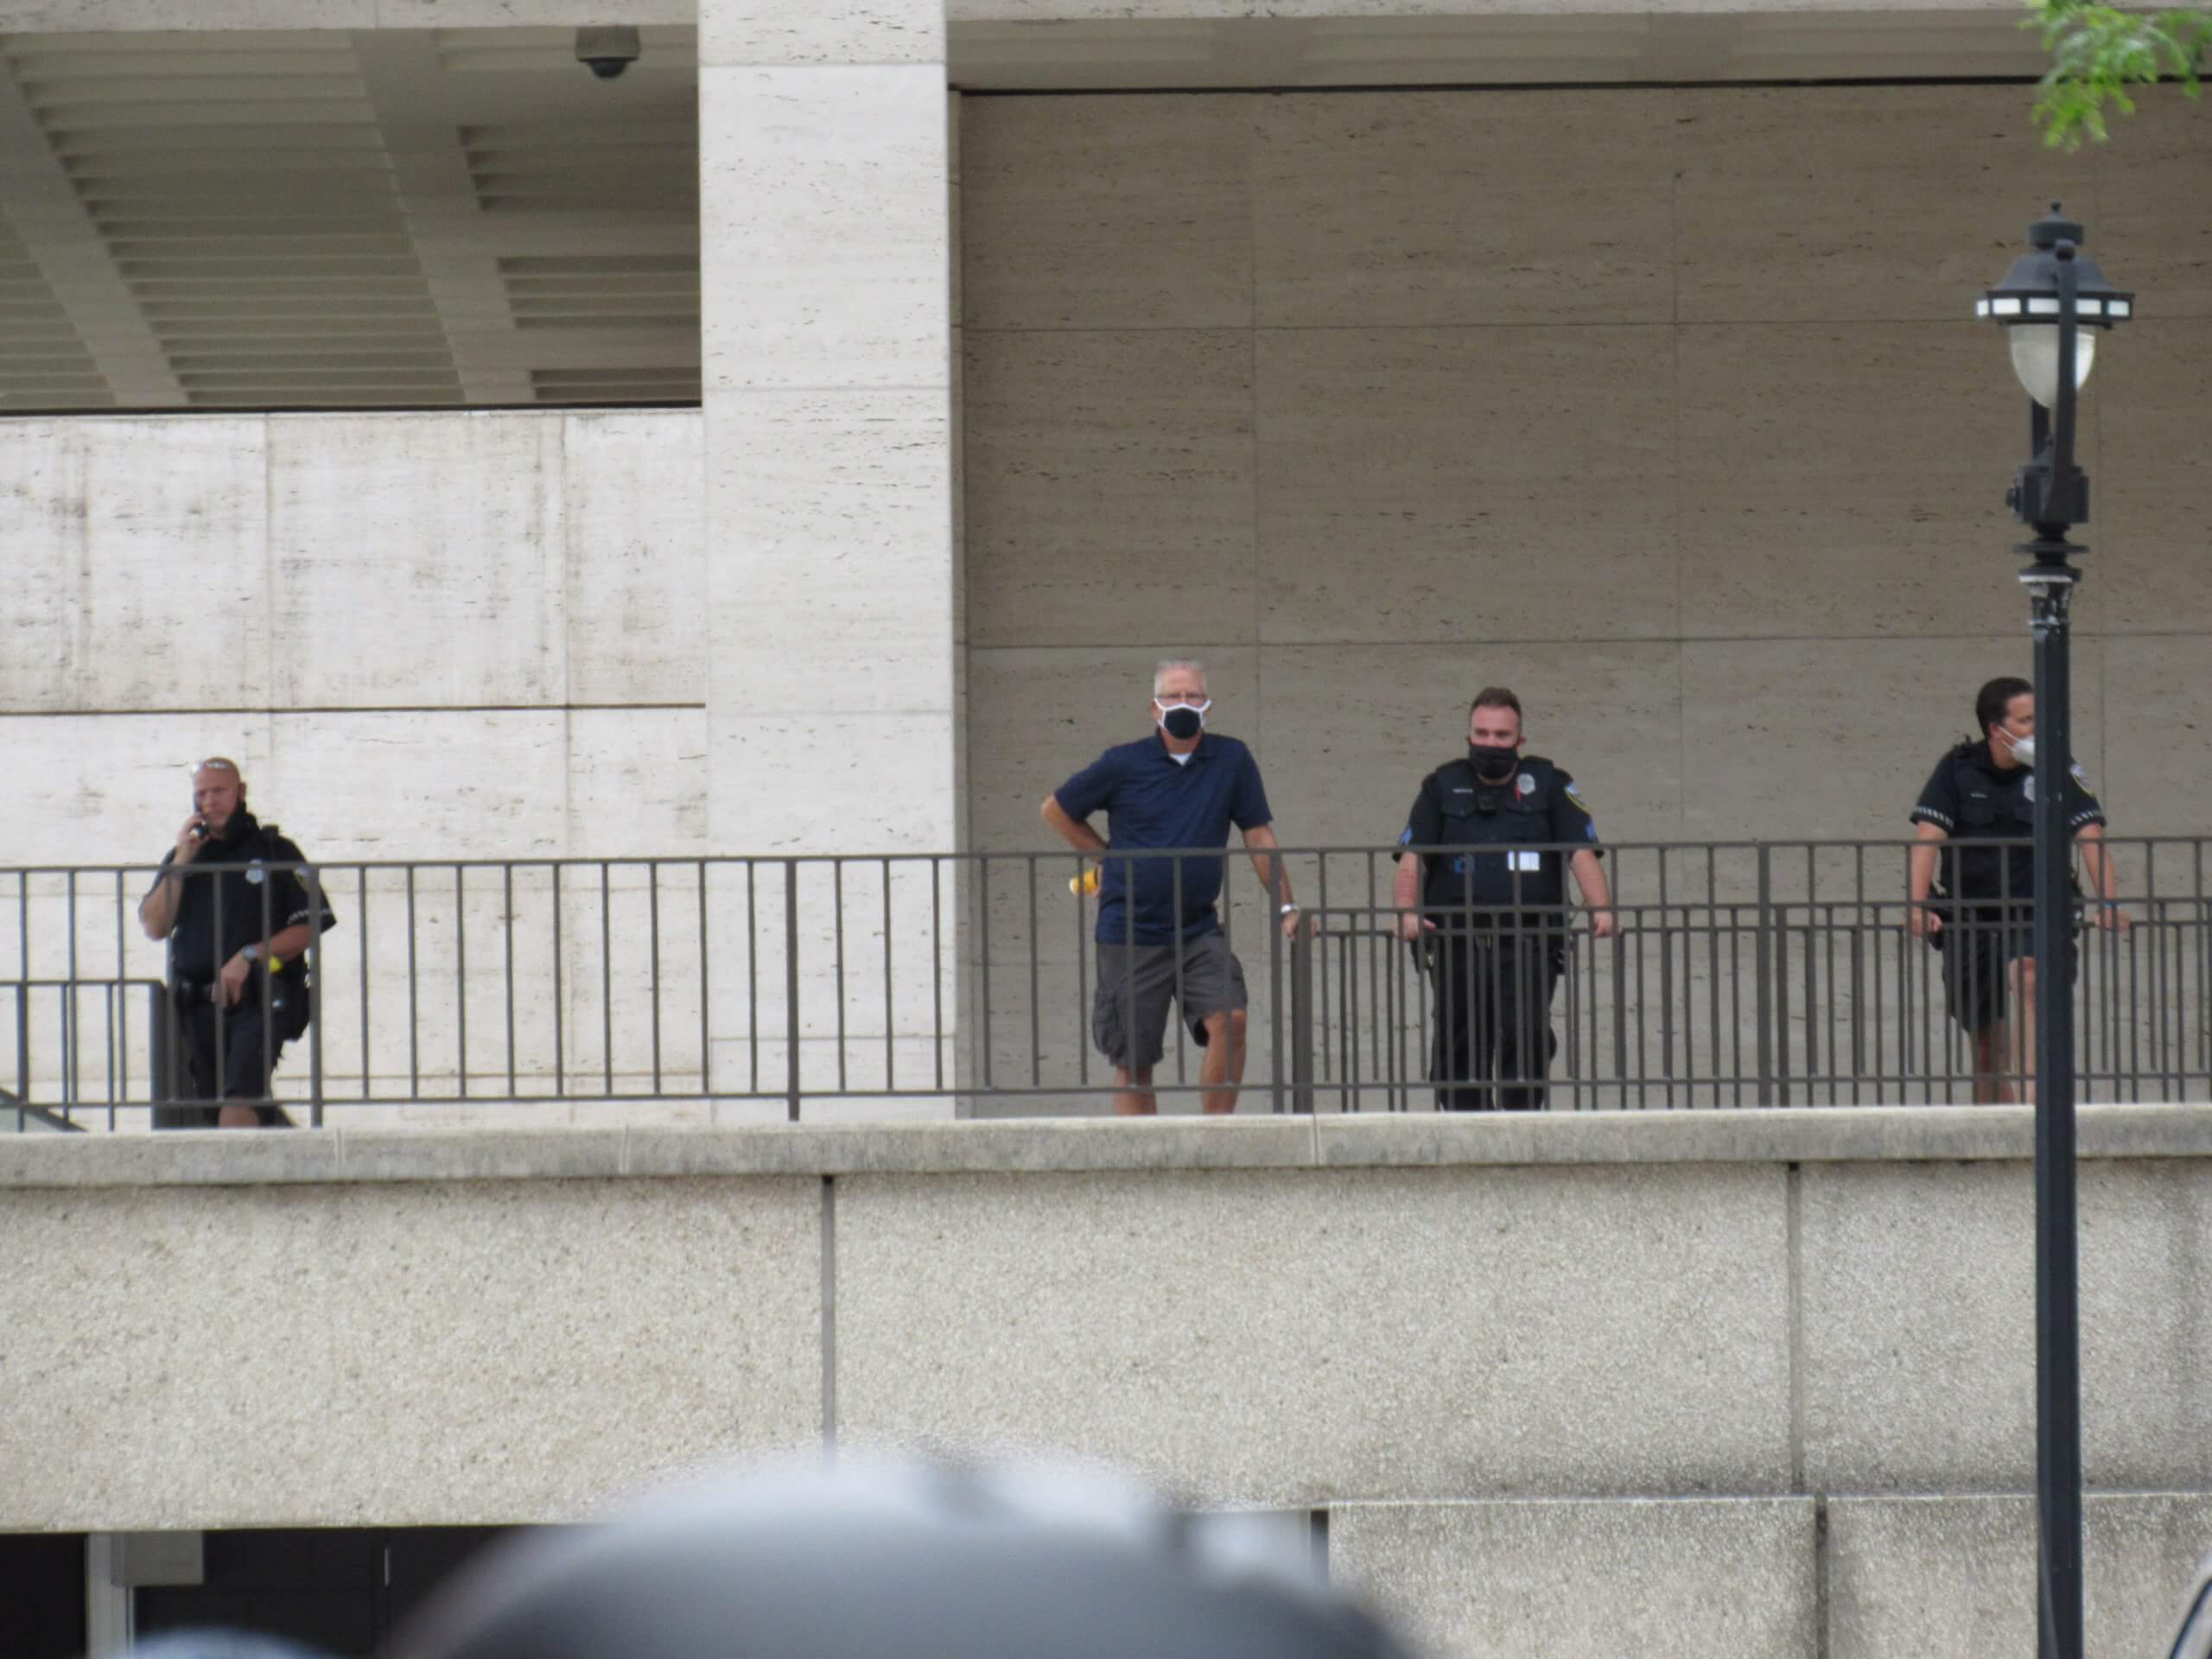 Police offices monitored the event from a distance. (Photo by Isiah Holmes)